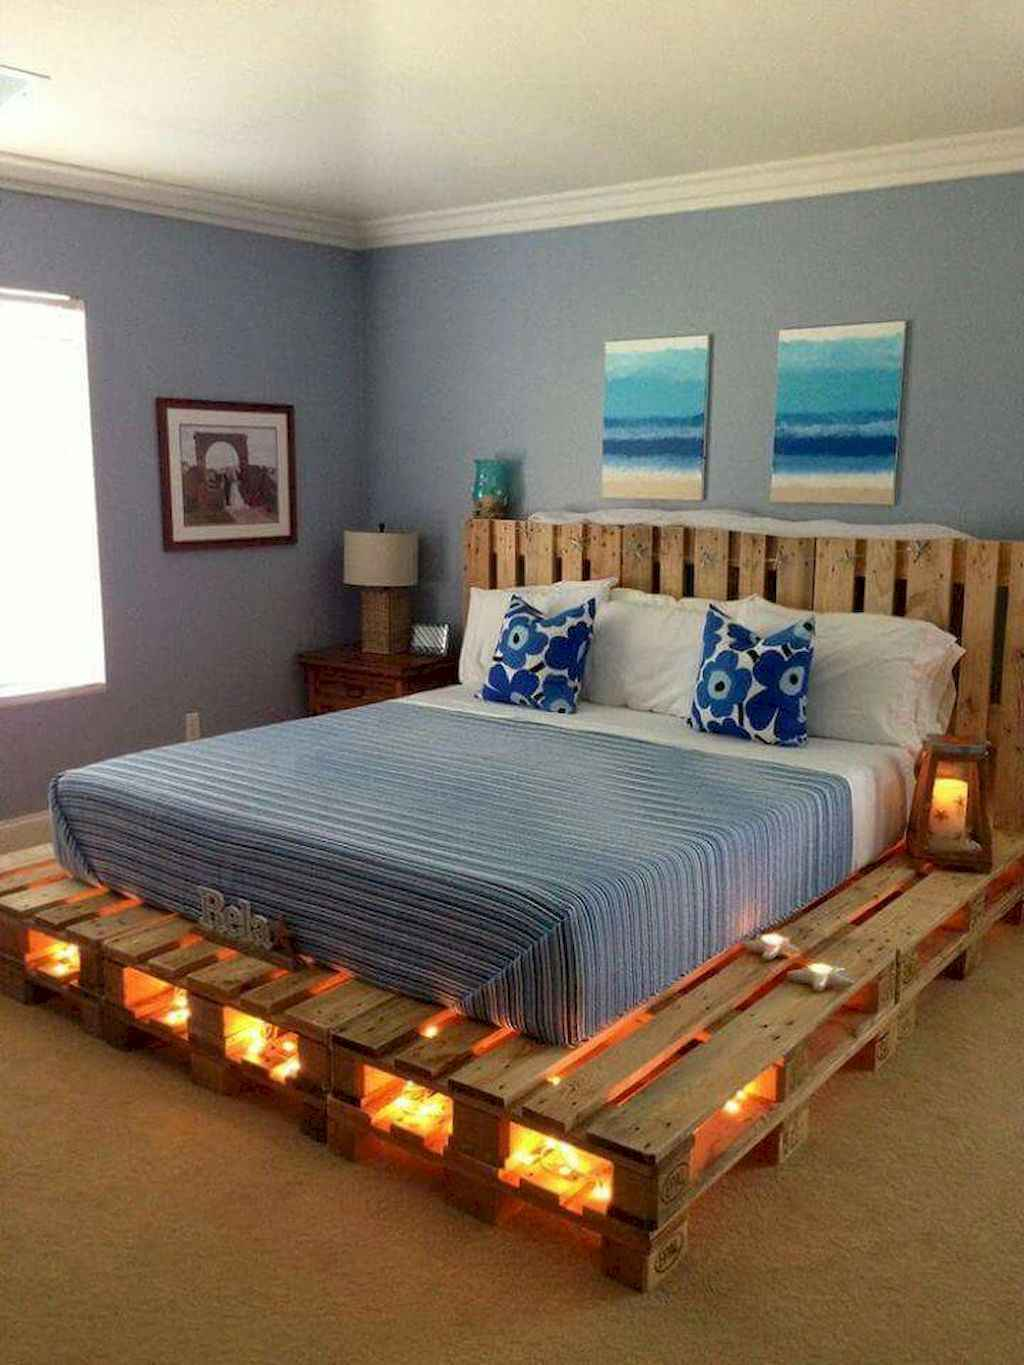 60 Romantic Master Bedroom Decor Ideas Roomadnesscom